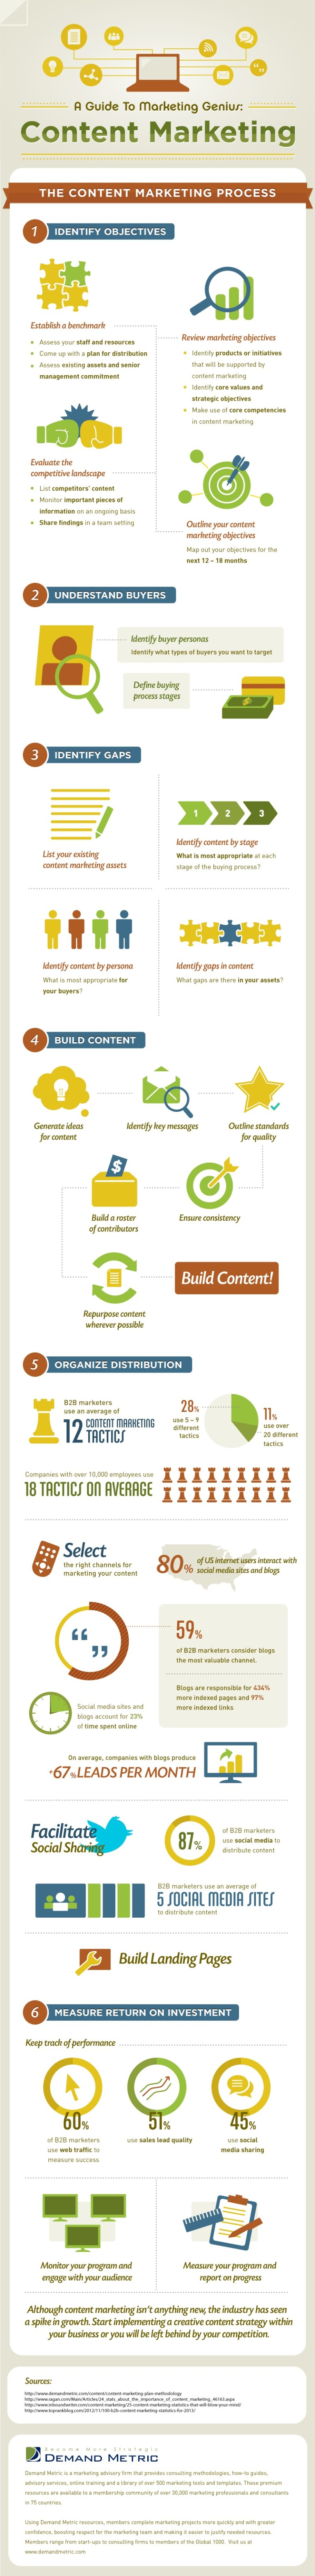 A Guide to Marketing Genius: Content Marketing [Infographic] Read more: http://www.marketingprofs.com/chirp/2013/11084/a-guide-to-marketing-genius-content-marketing-infographic